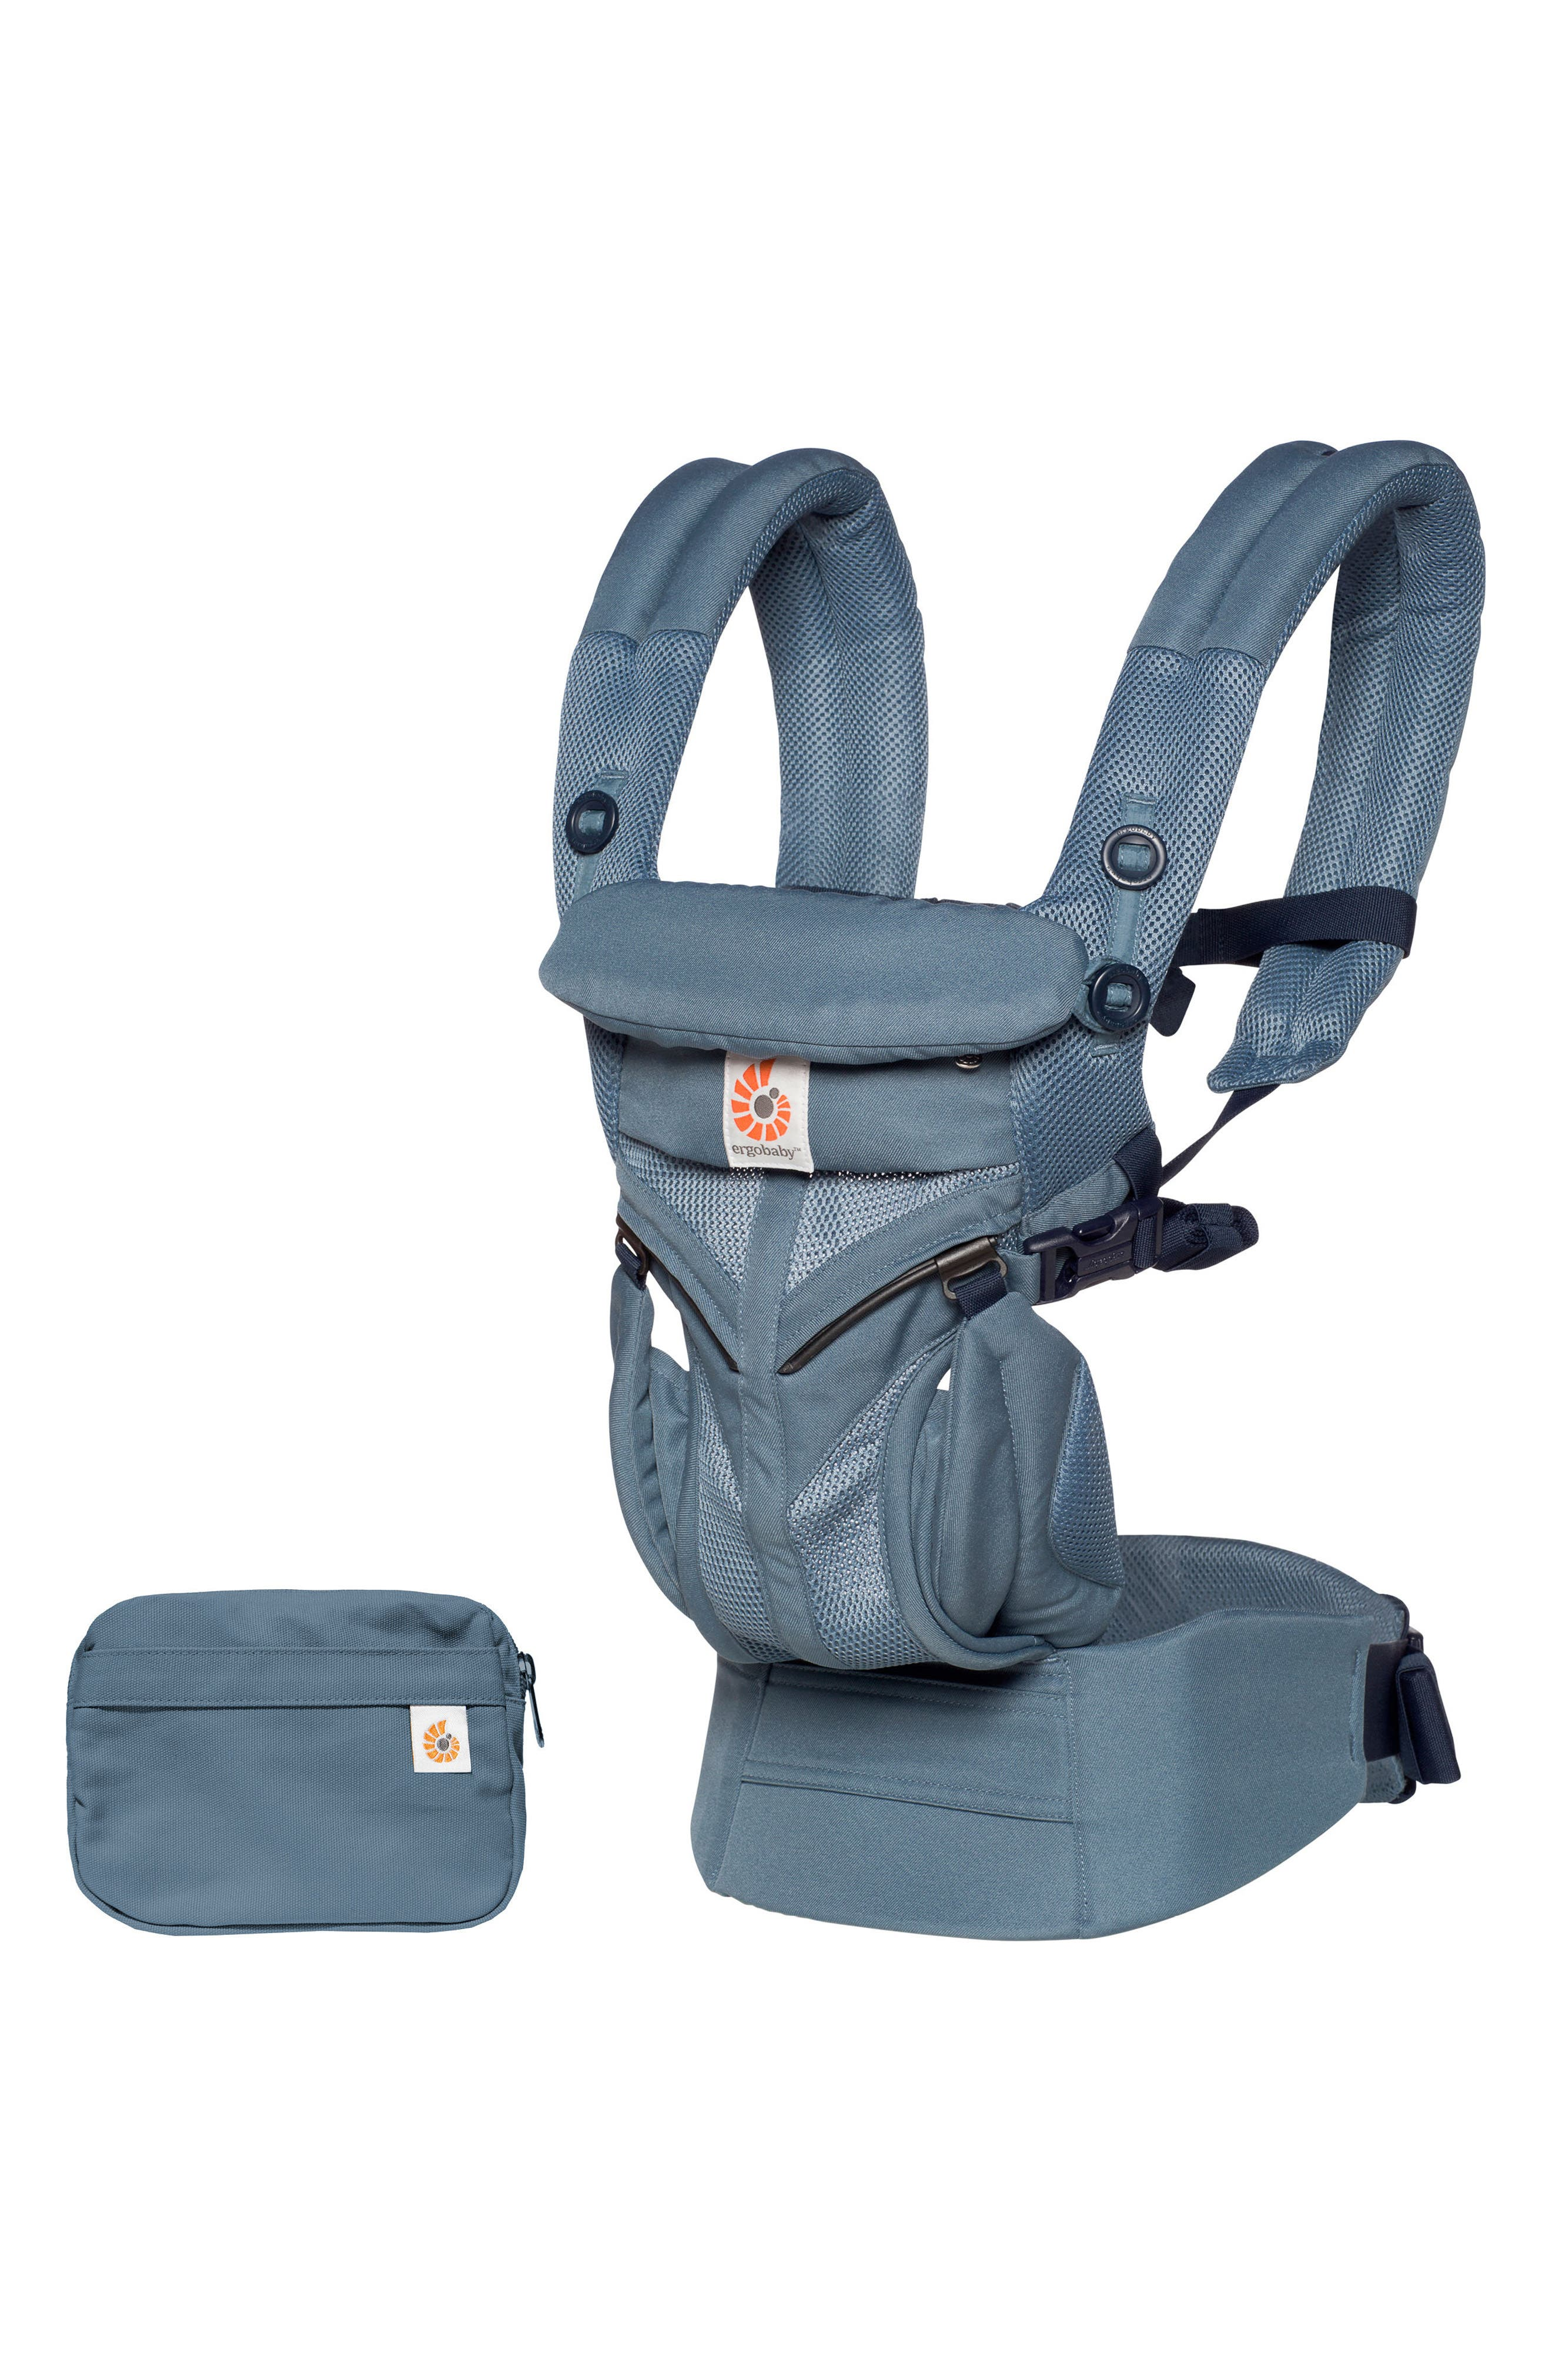 Alternate Image 1 Selected - ERGObaby Omni 360 - Cool Air Baby Carrier